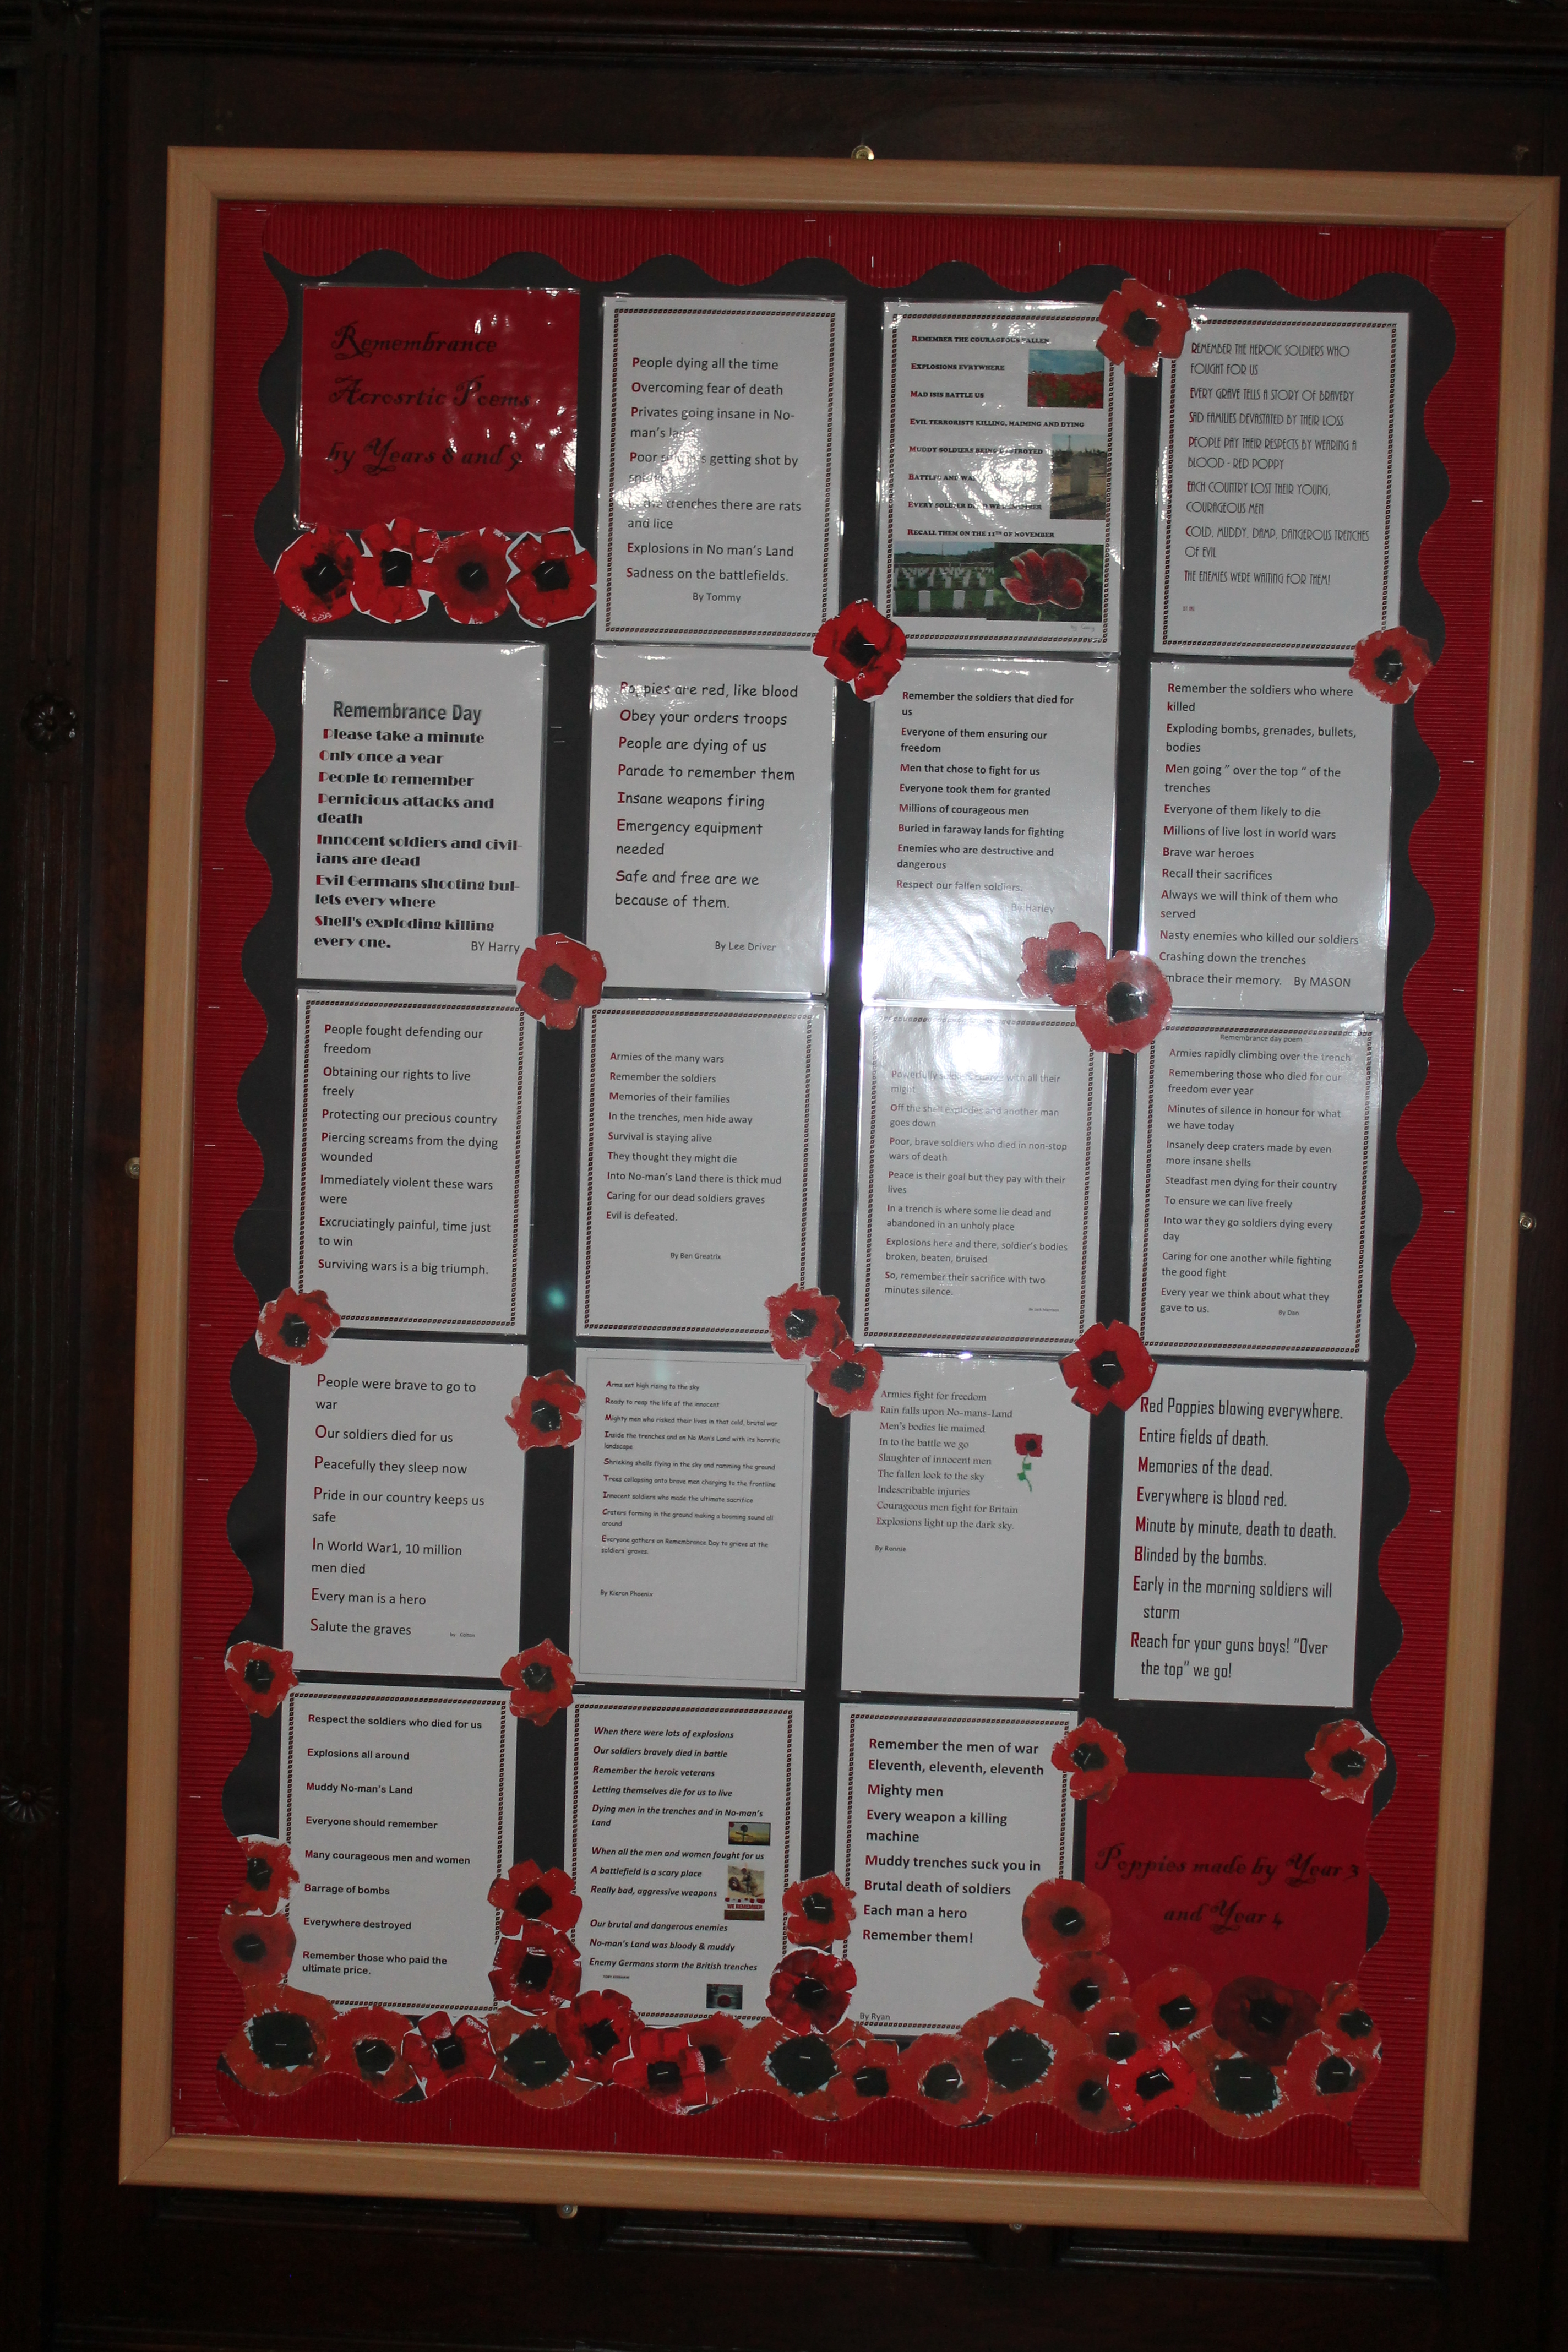 remembrance day poems - Bramfield House